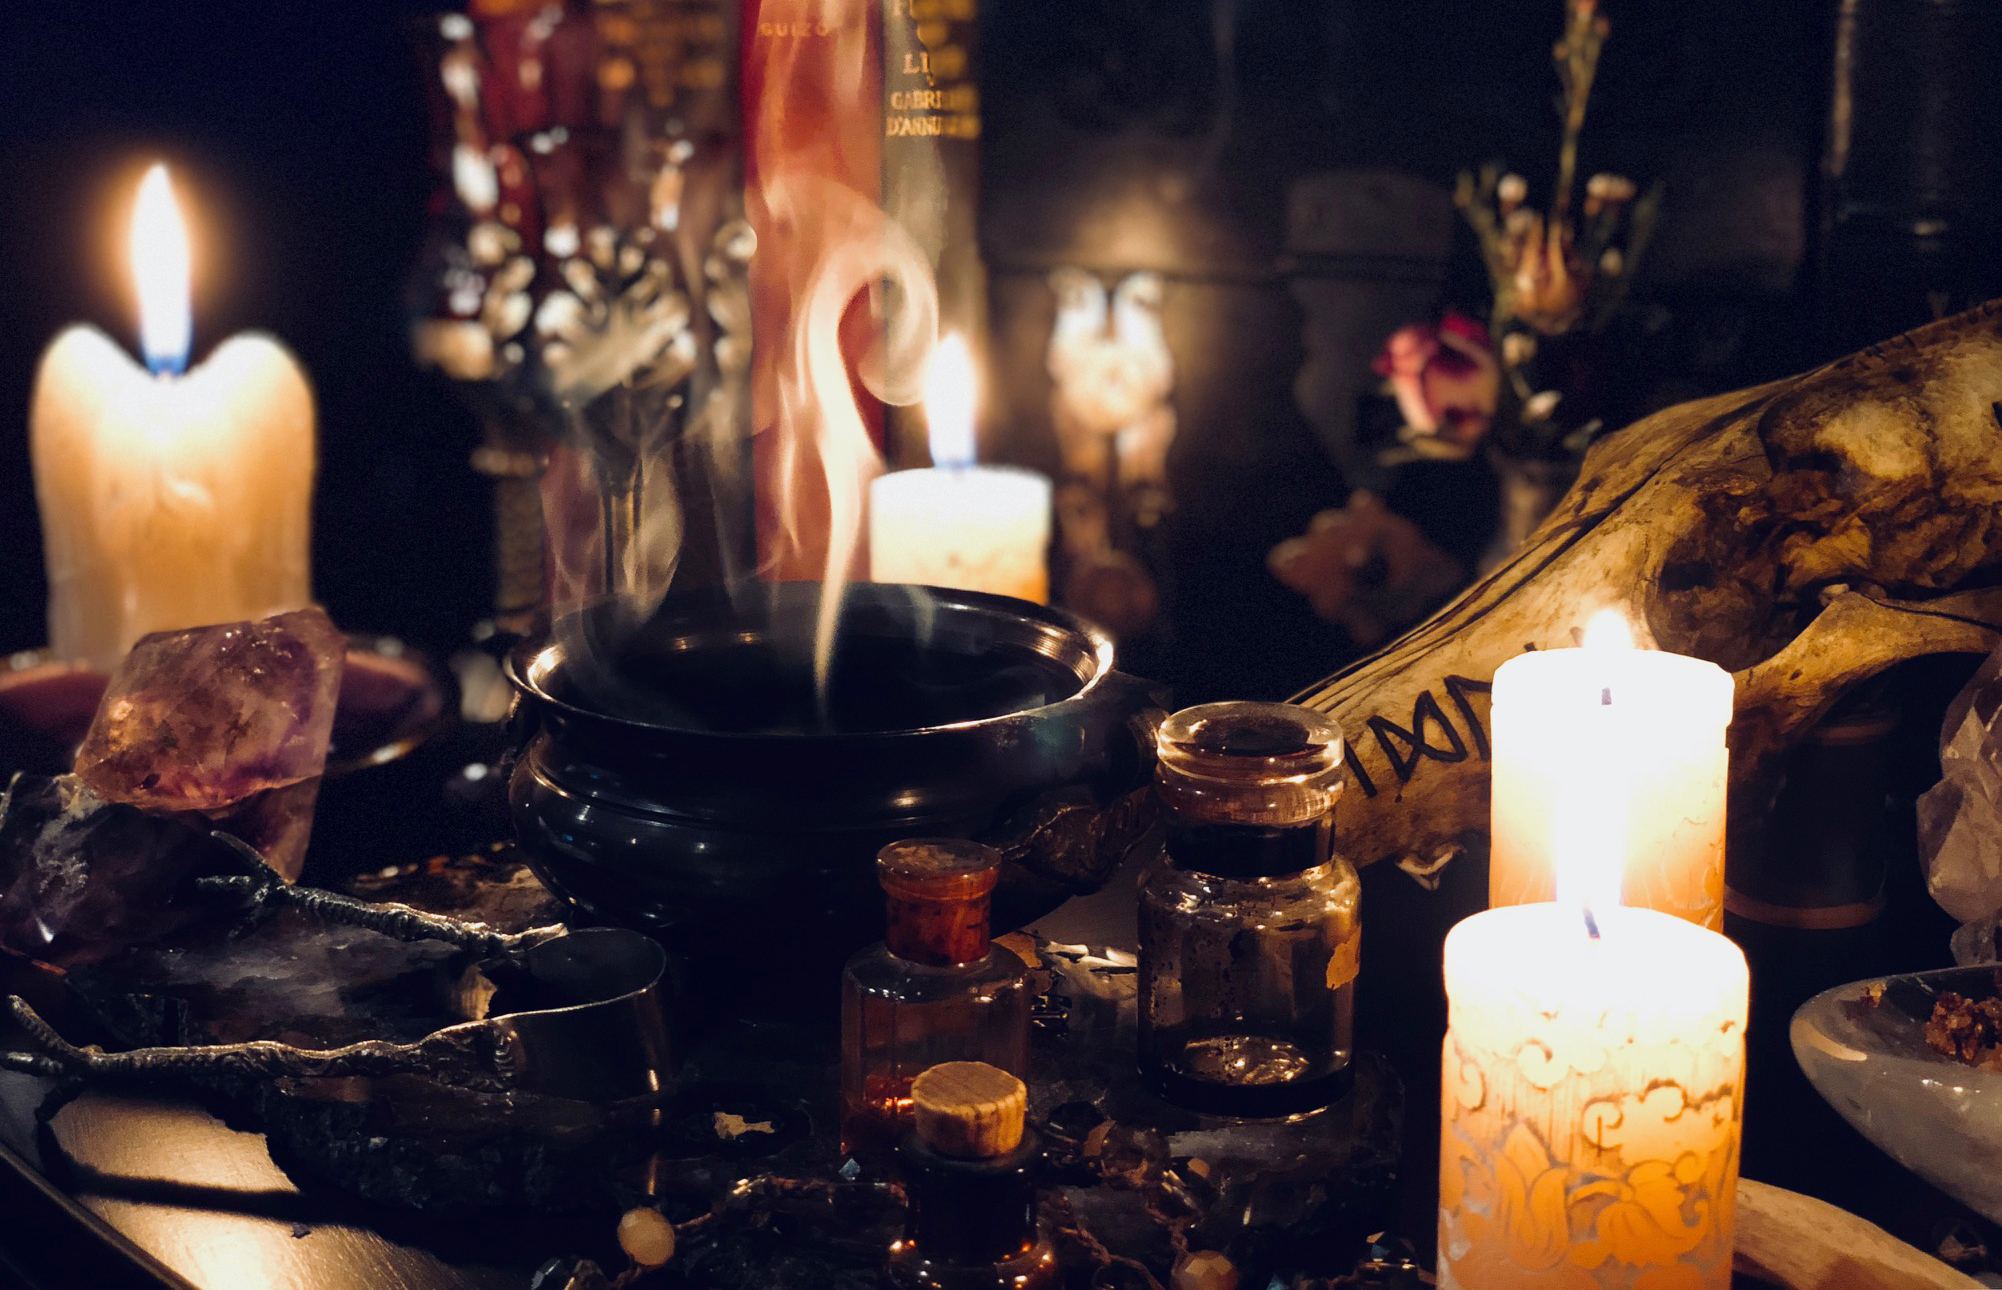 wicca-pagan-witchcraft-supplies-spell-candles-white-magick-alchemy.jpg